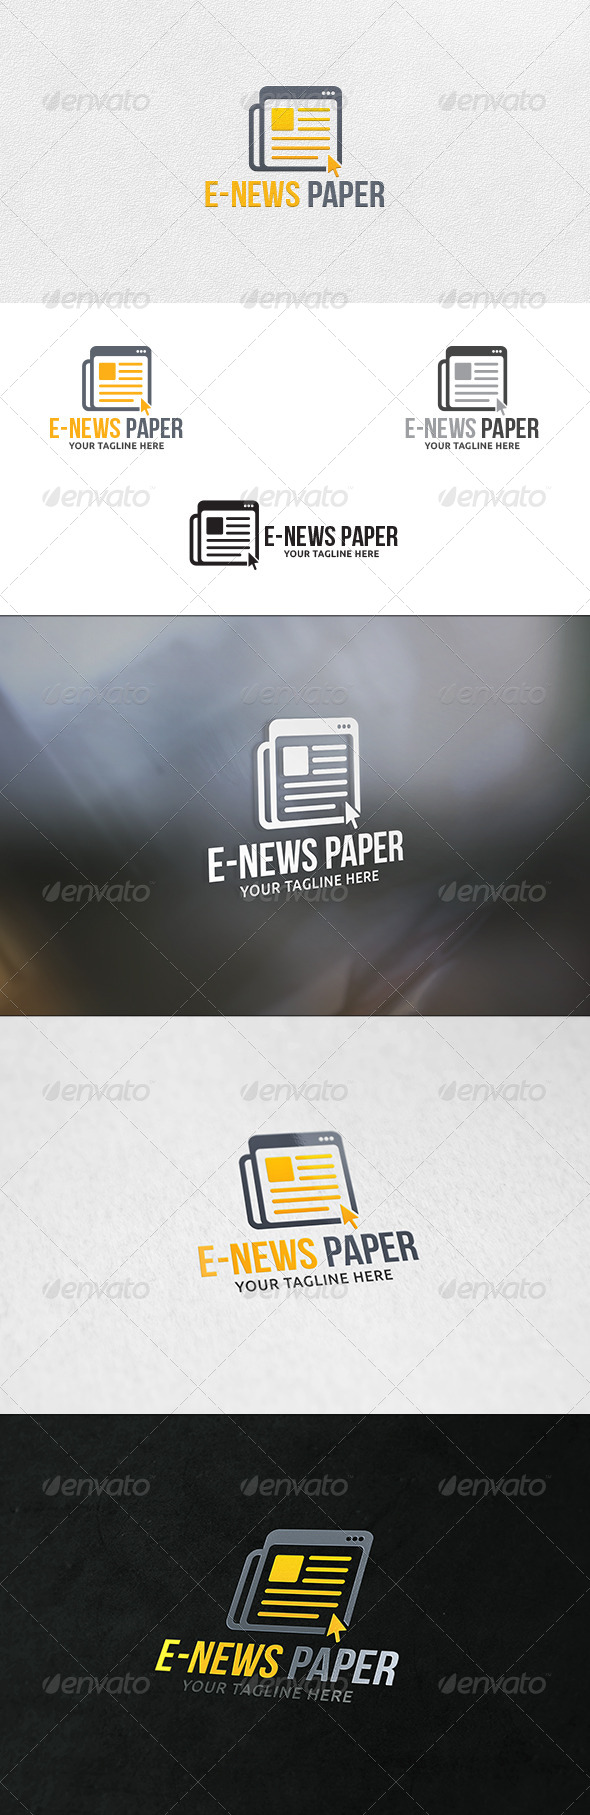 ENews Paper Logo Template Logo Templates Template And Logos - E news template